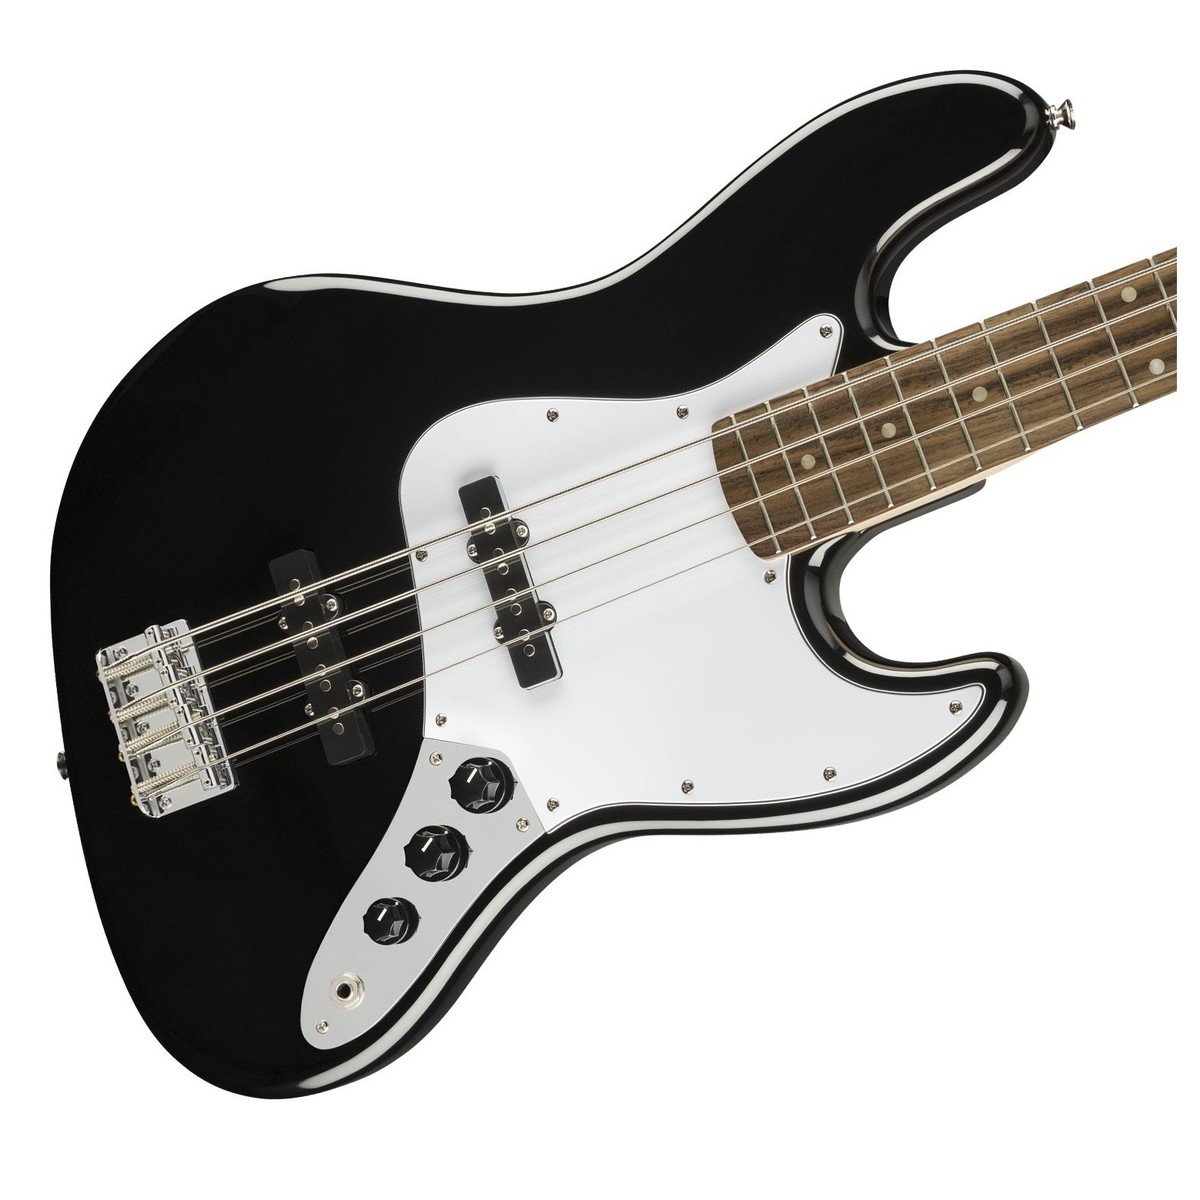 squier affinity jazz bass black at gear4music. Black Bedroom Furniture Sets. Home Design Ideas